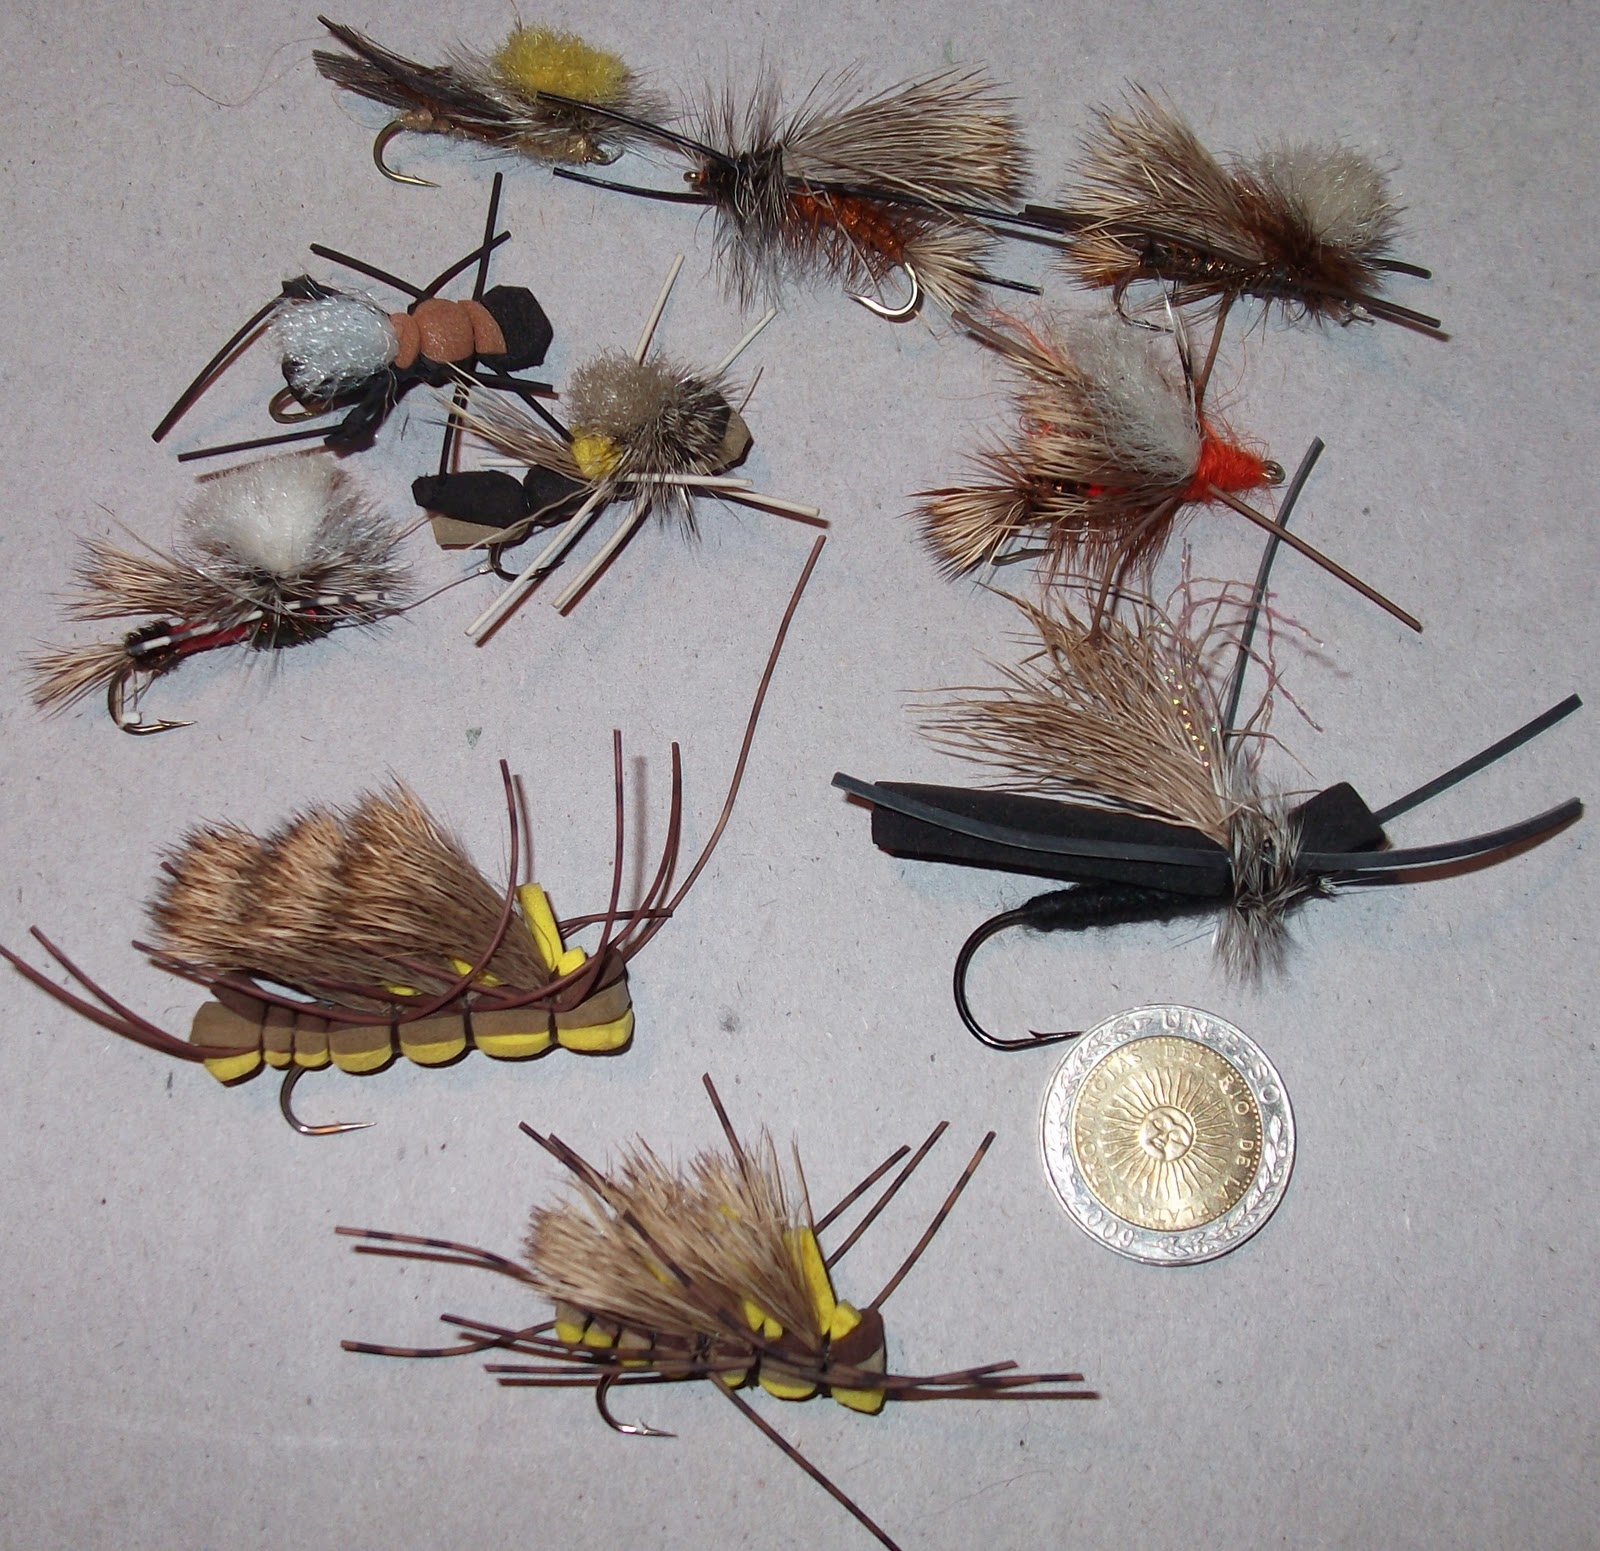 First cast fly fishing fly fishing patagonia argentina for Fly fishing nymphs